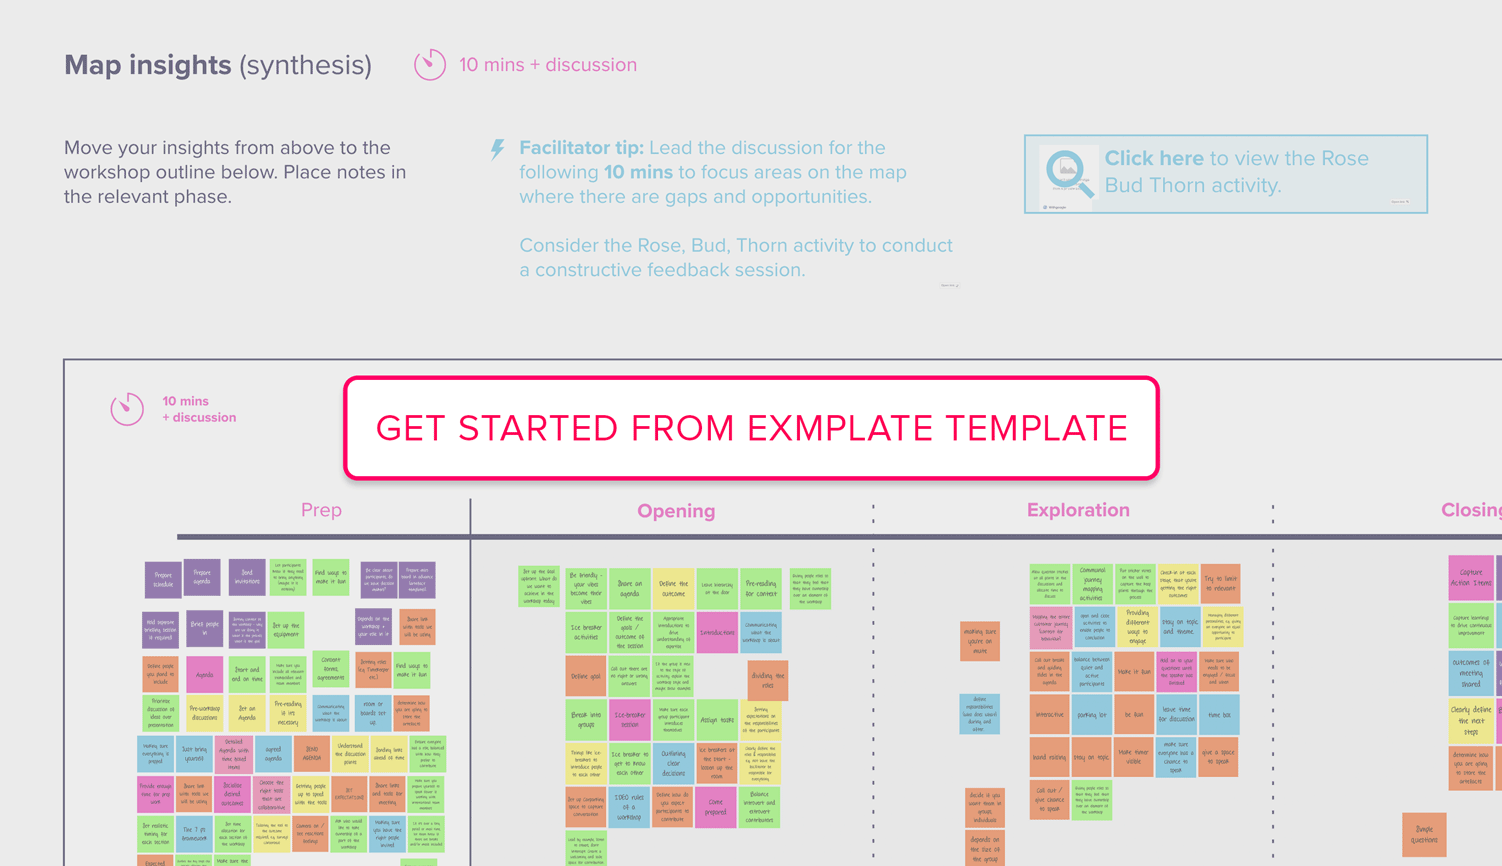 Get Started from Example Template